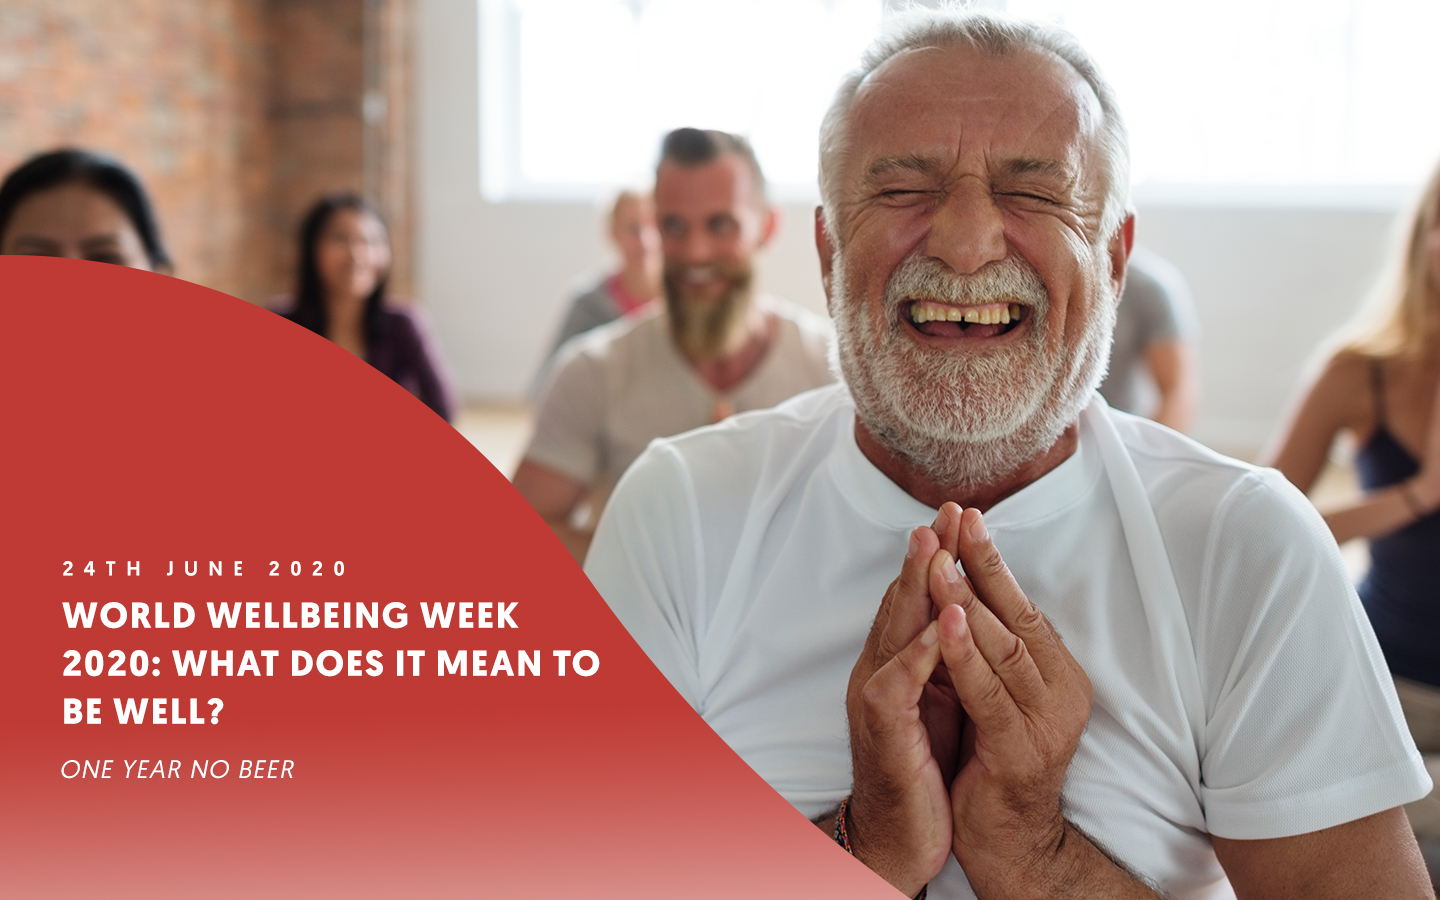 World Wellbeing Week 2020: What does it mean to be well?